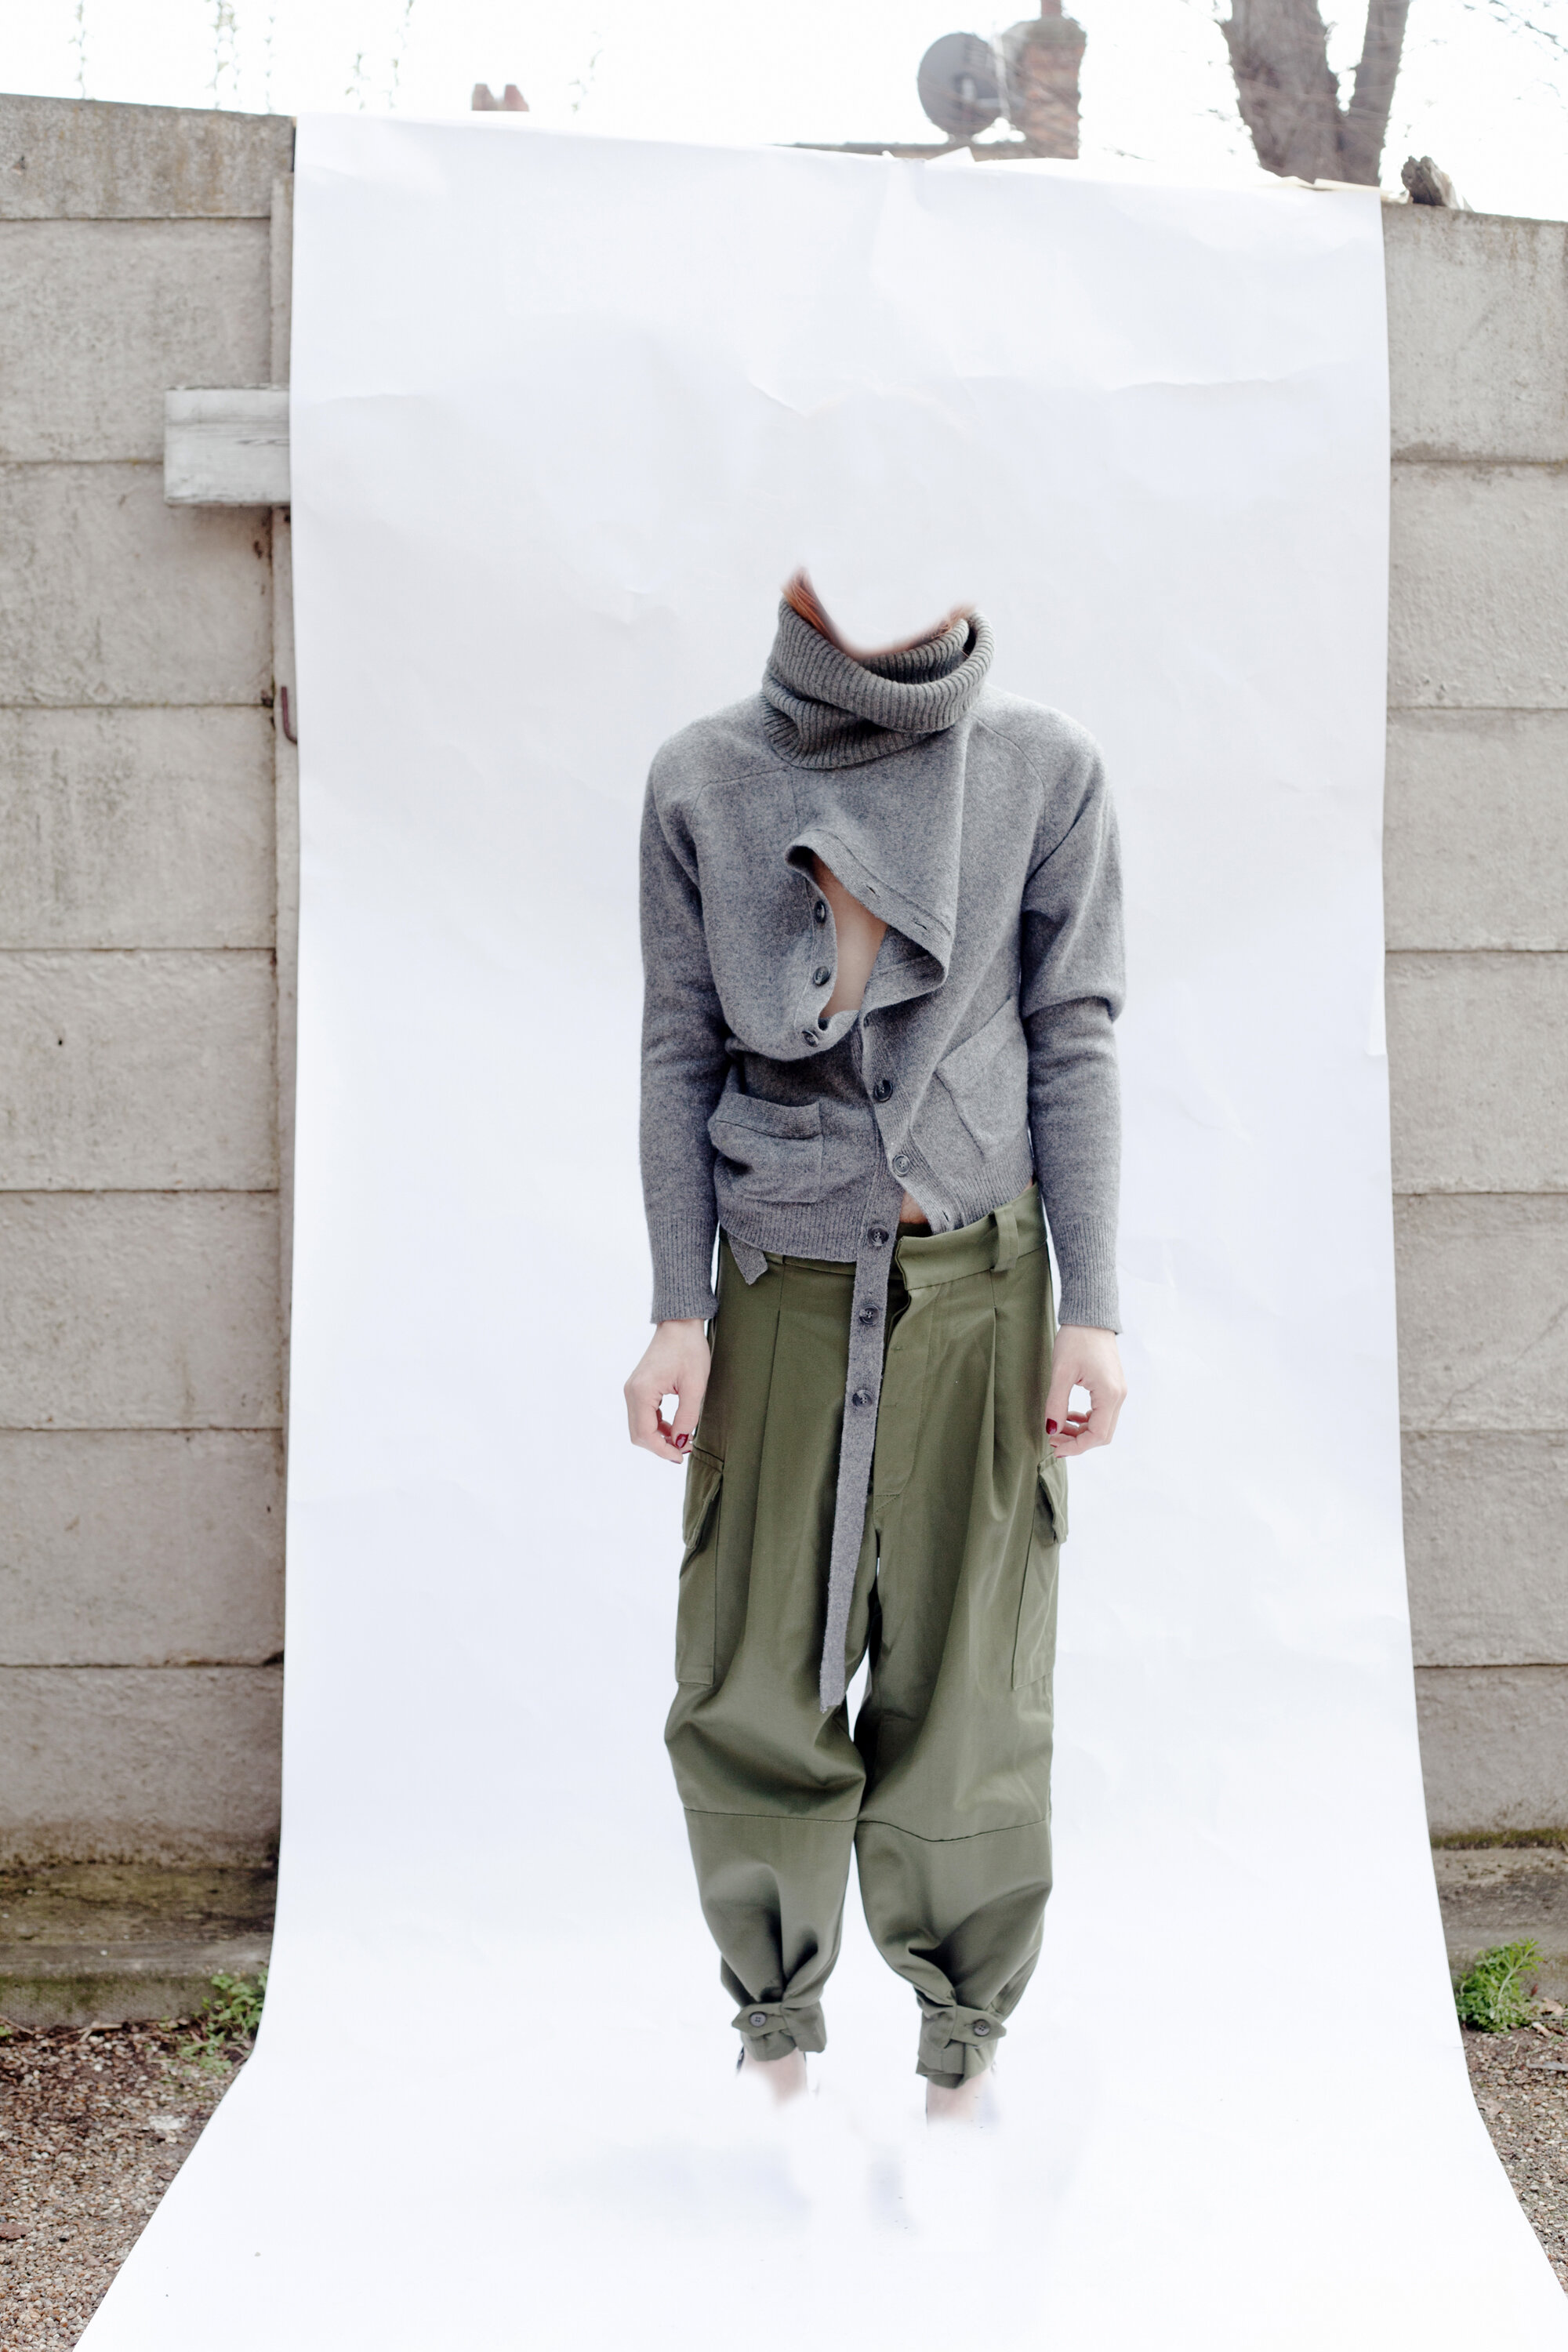 DRESS Crisis Collection: Hybrid Polo Cardigan in Grey Wool & Reconstituted Combats Trousers #dressltd